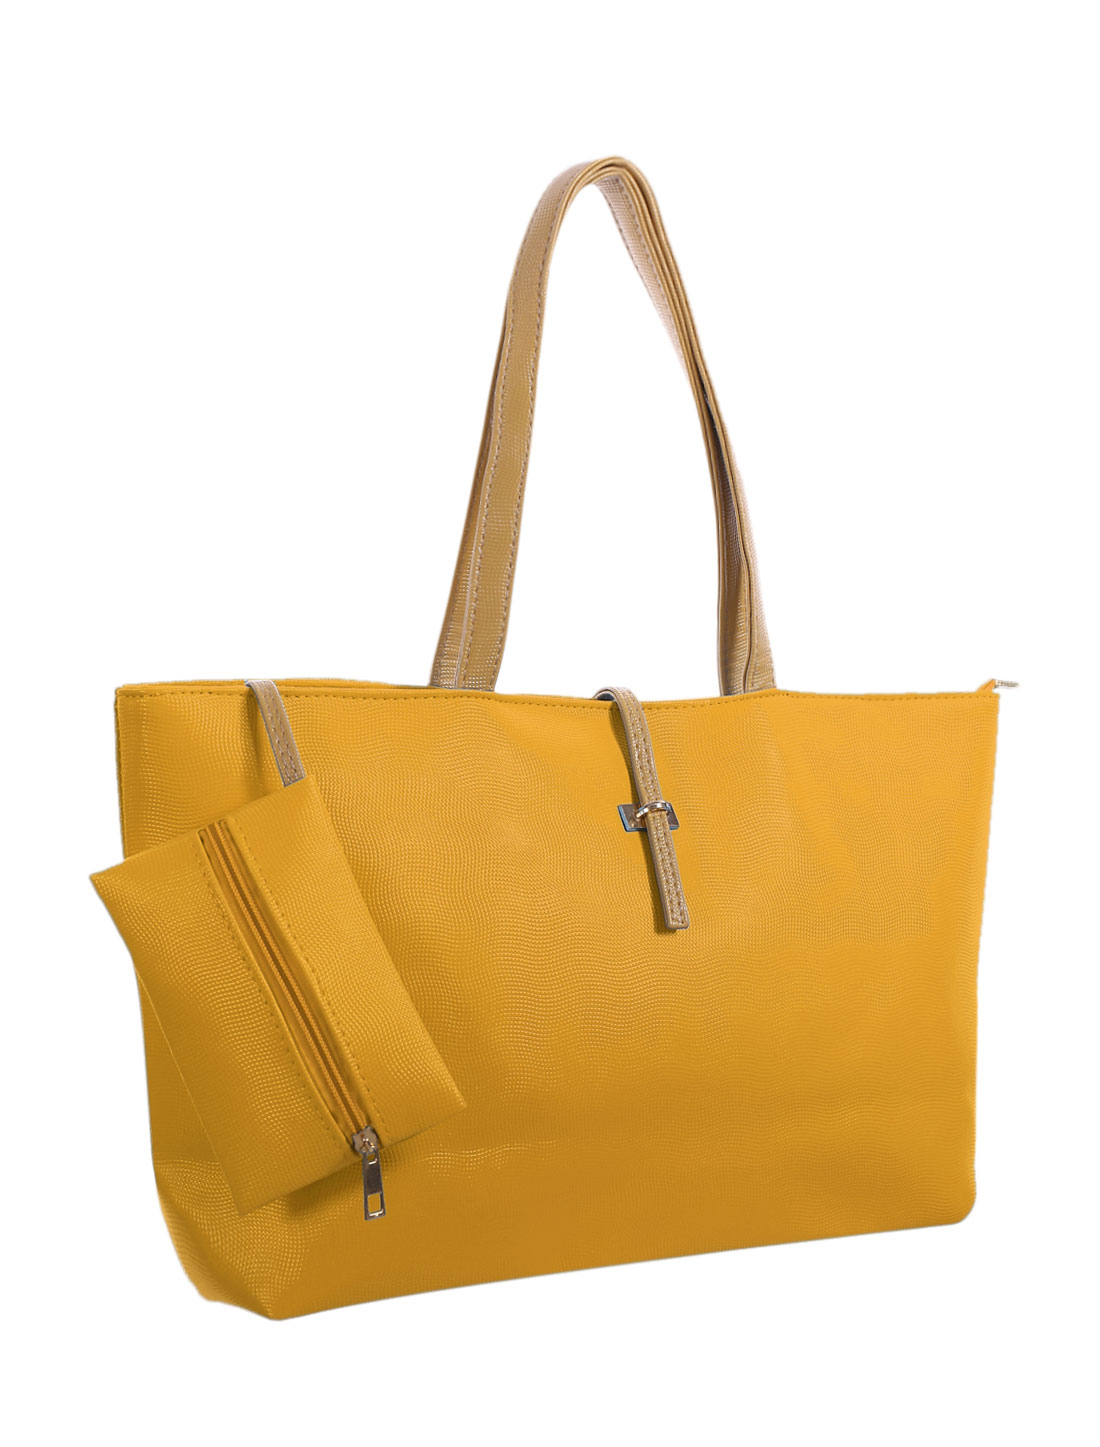 Women Top Handles Textured Faux Leather Fully Lined Tote w Pouch Yellow